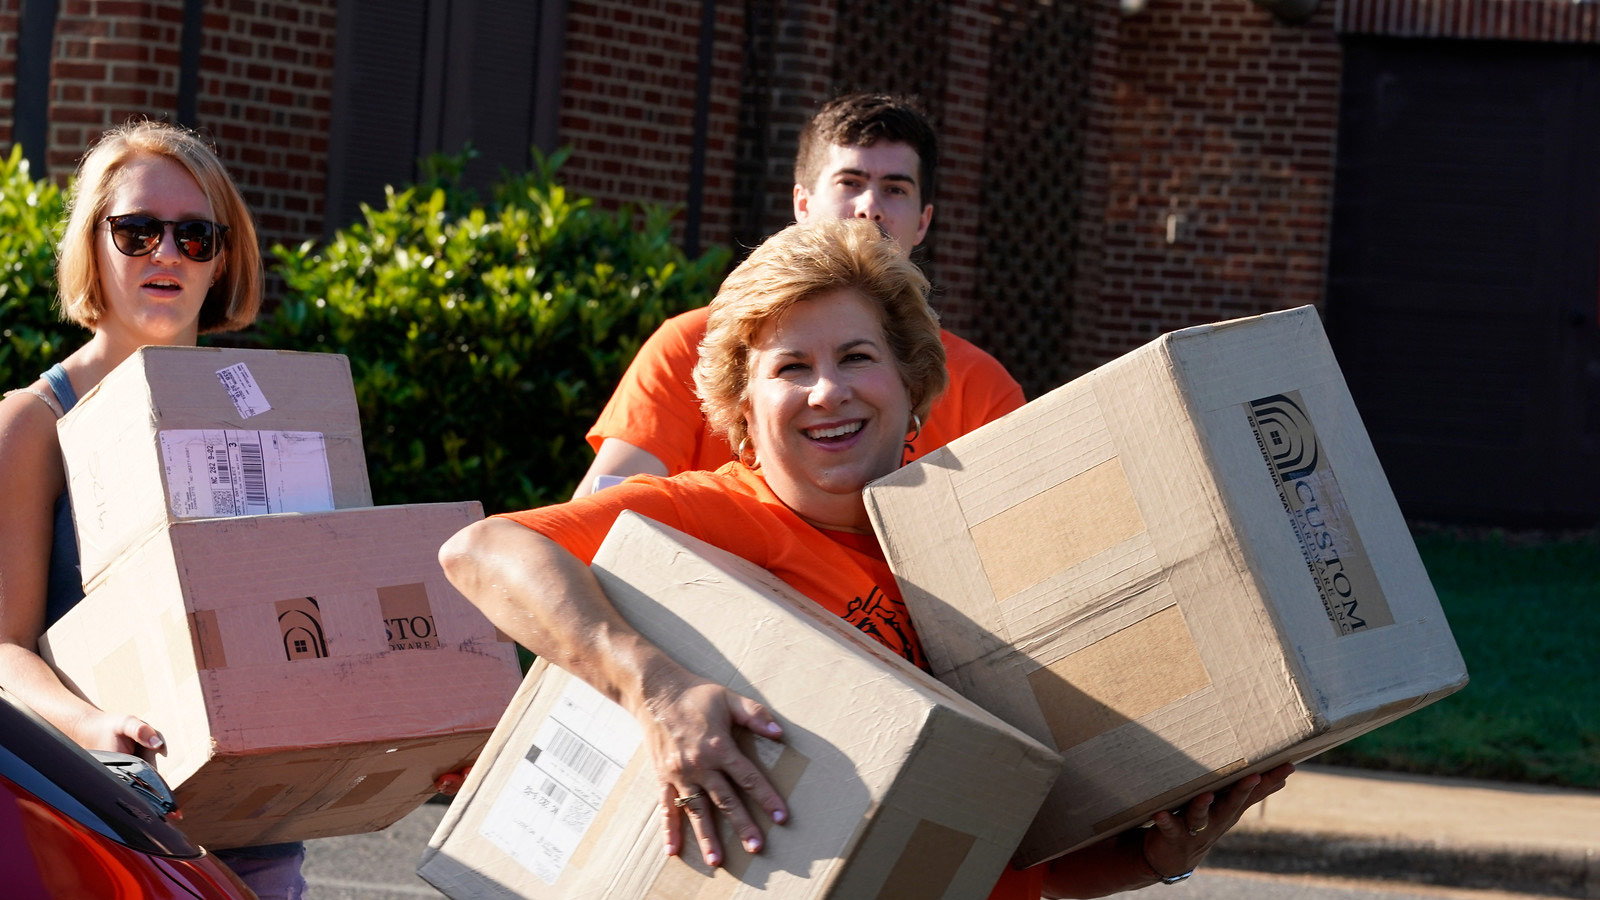 Mrs. Downs moving boxes